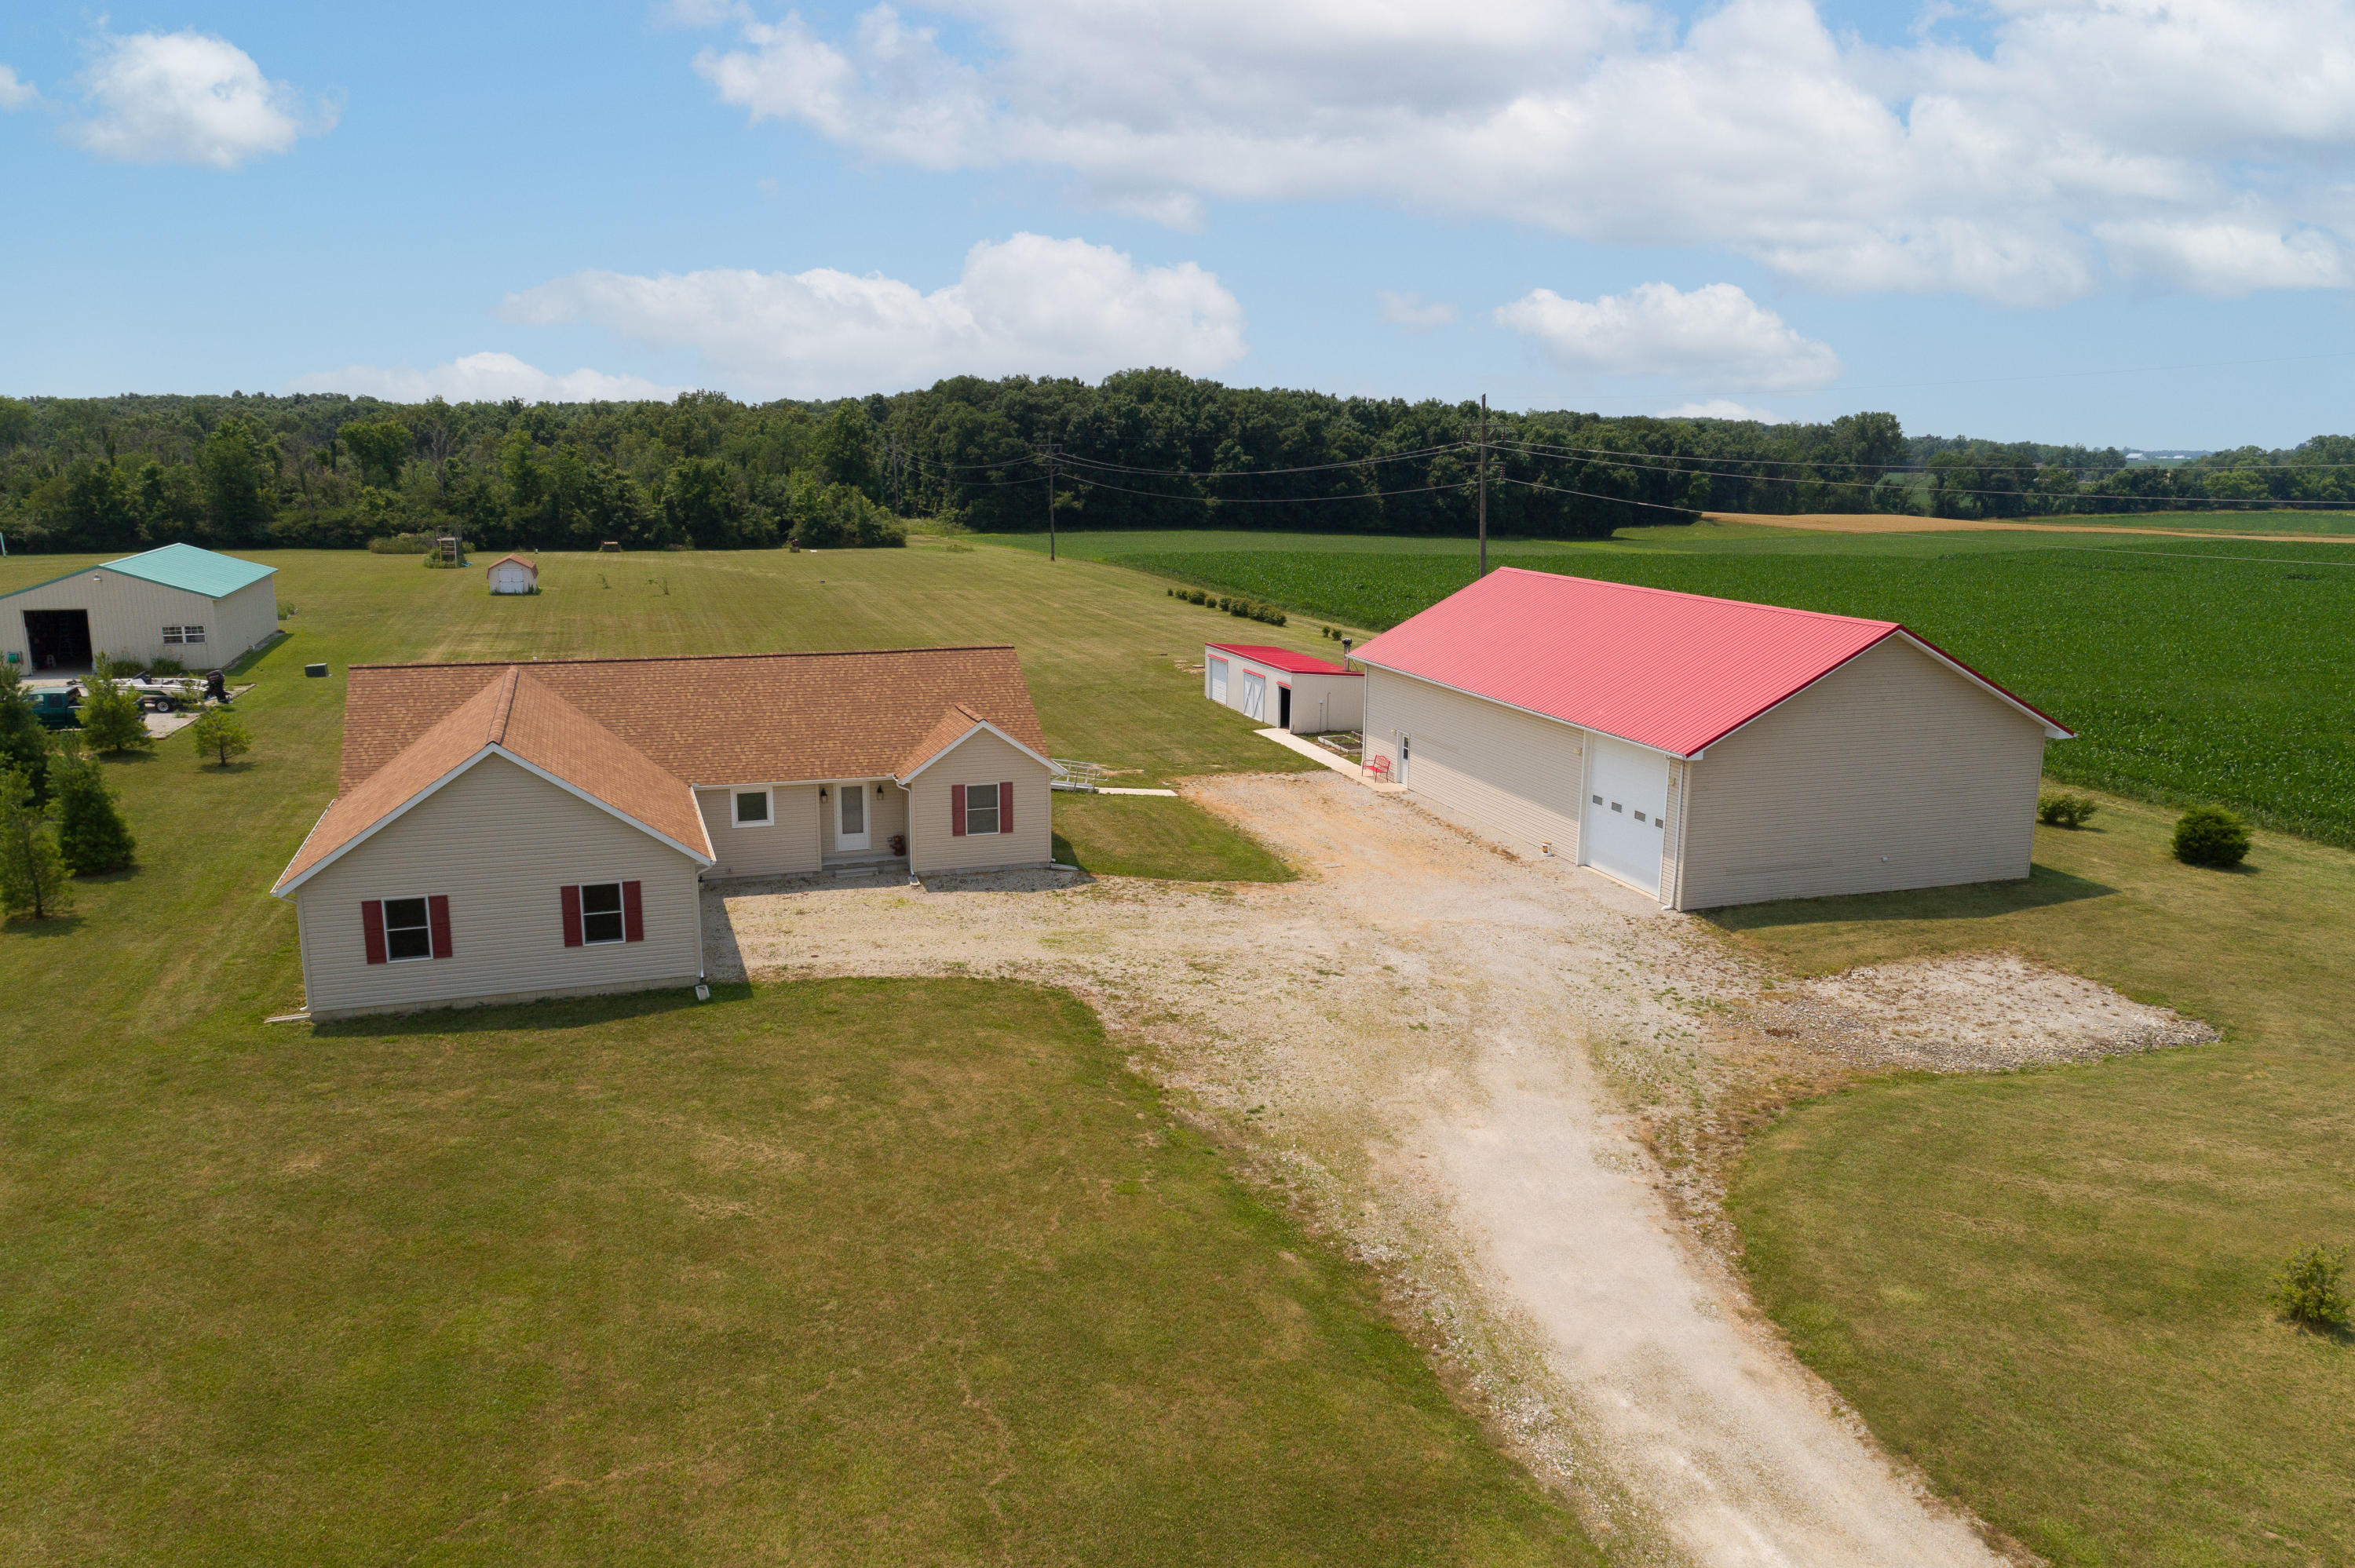 Photo 1 for 2020 Loy Rd Fort Loramie, OH 45845